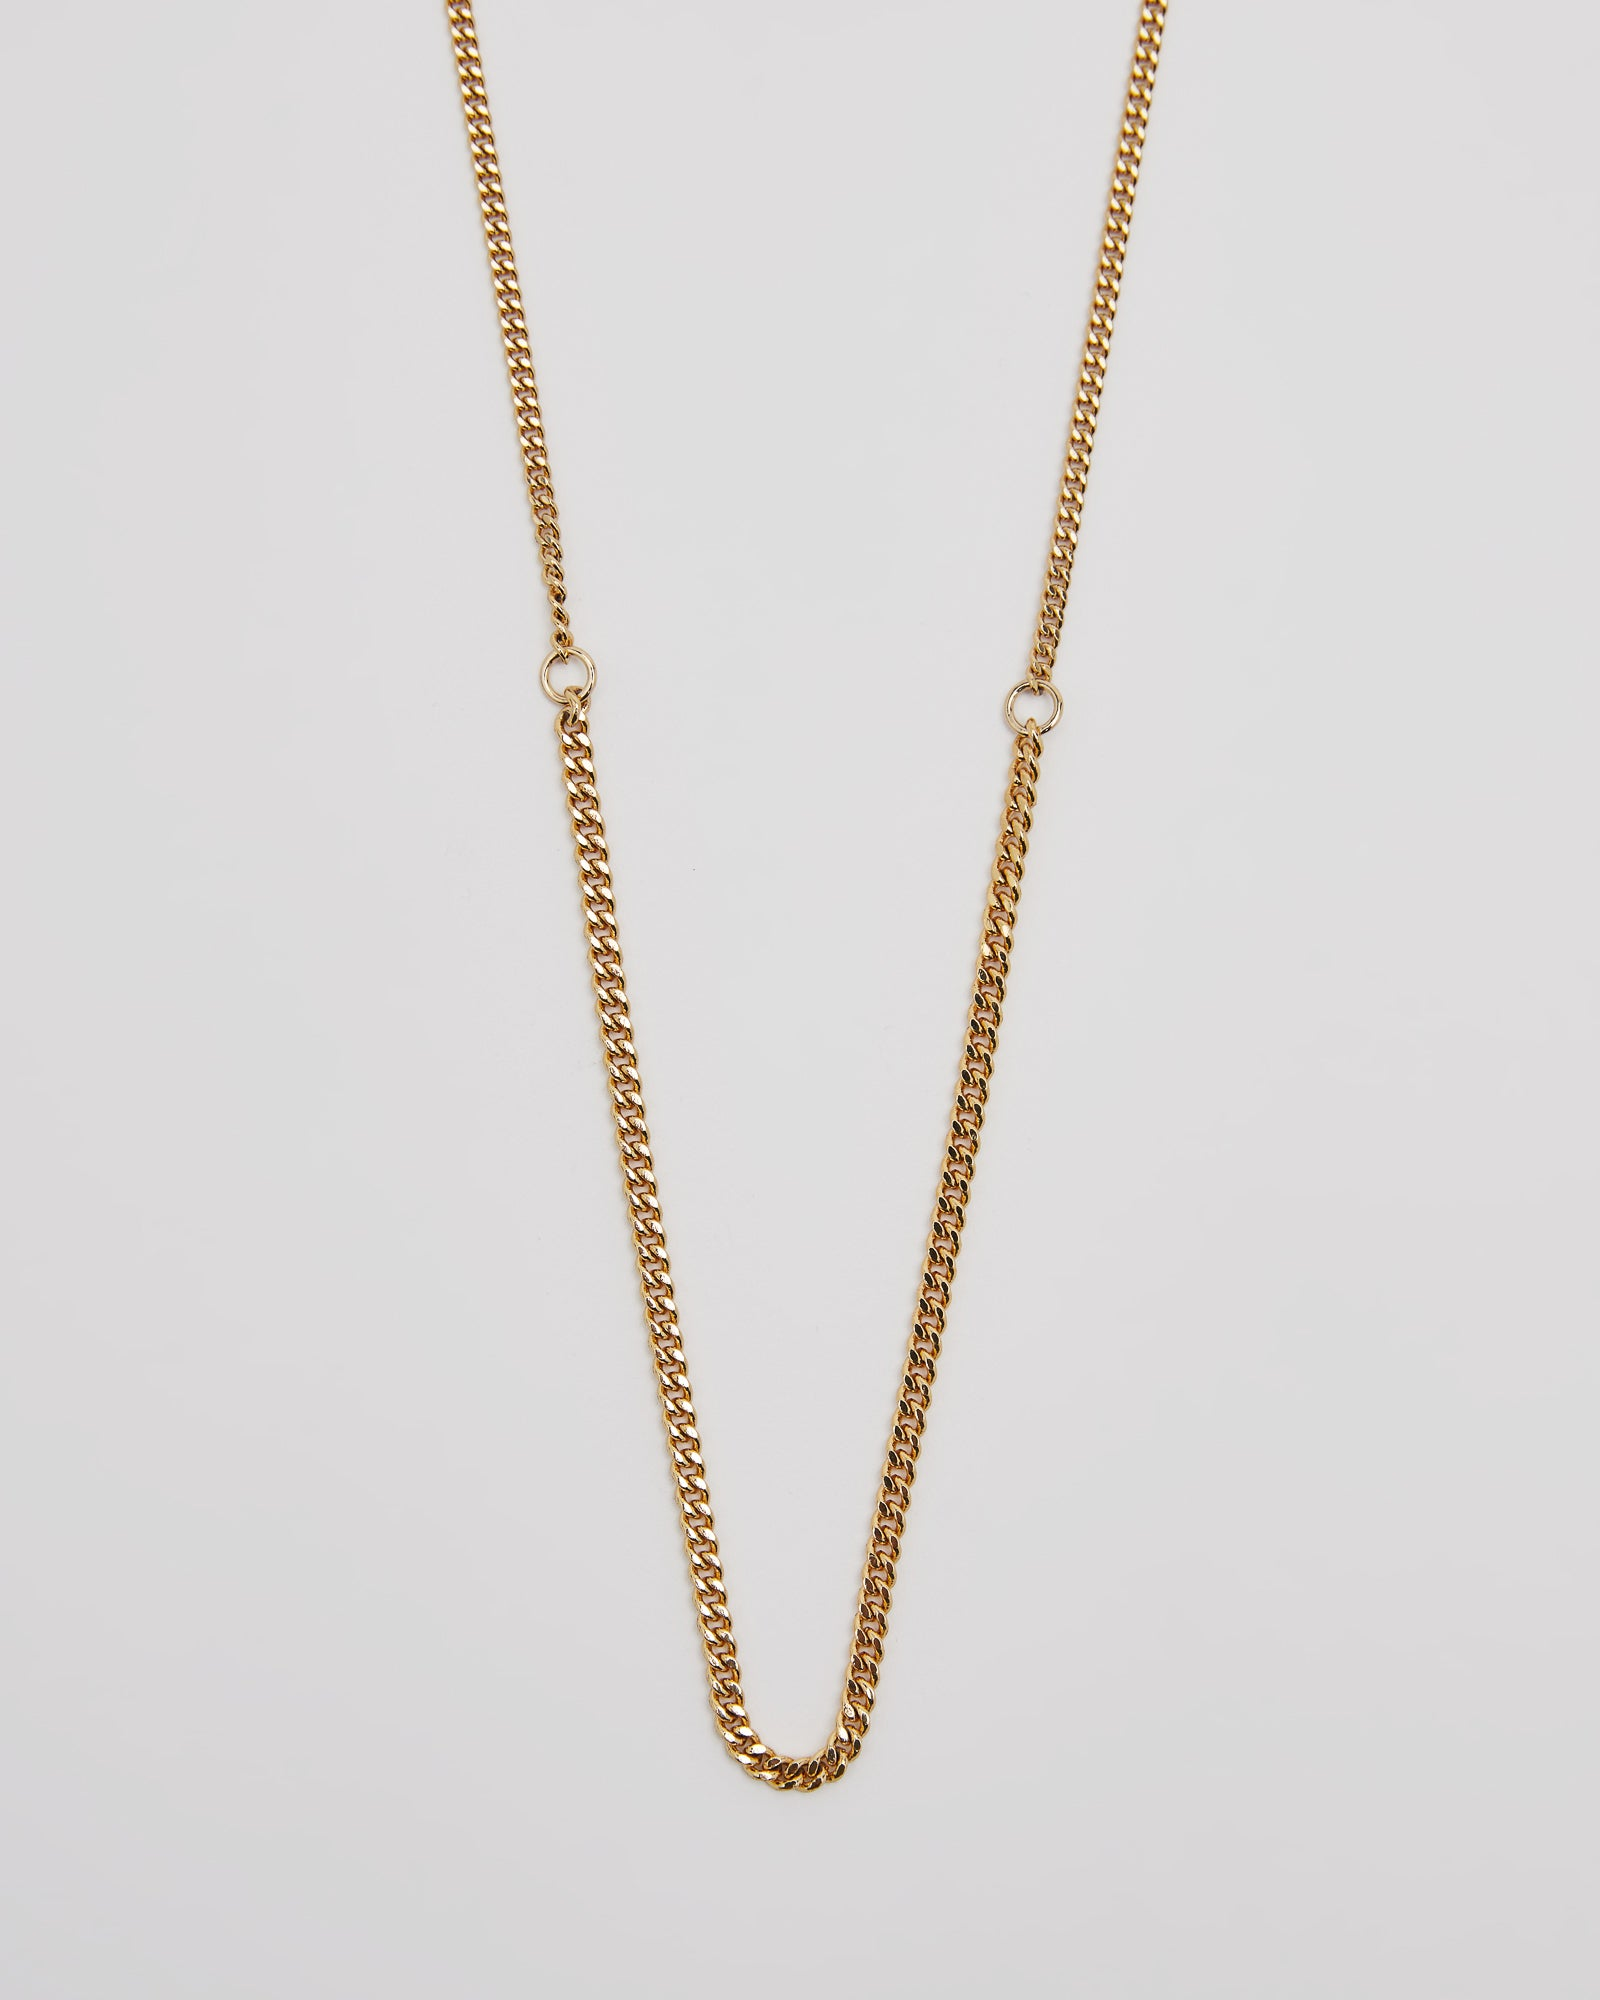 Gen Chain in Gold